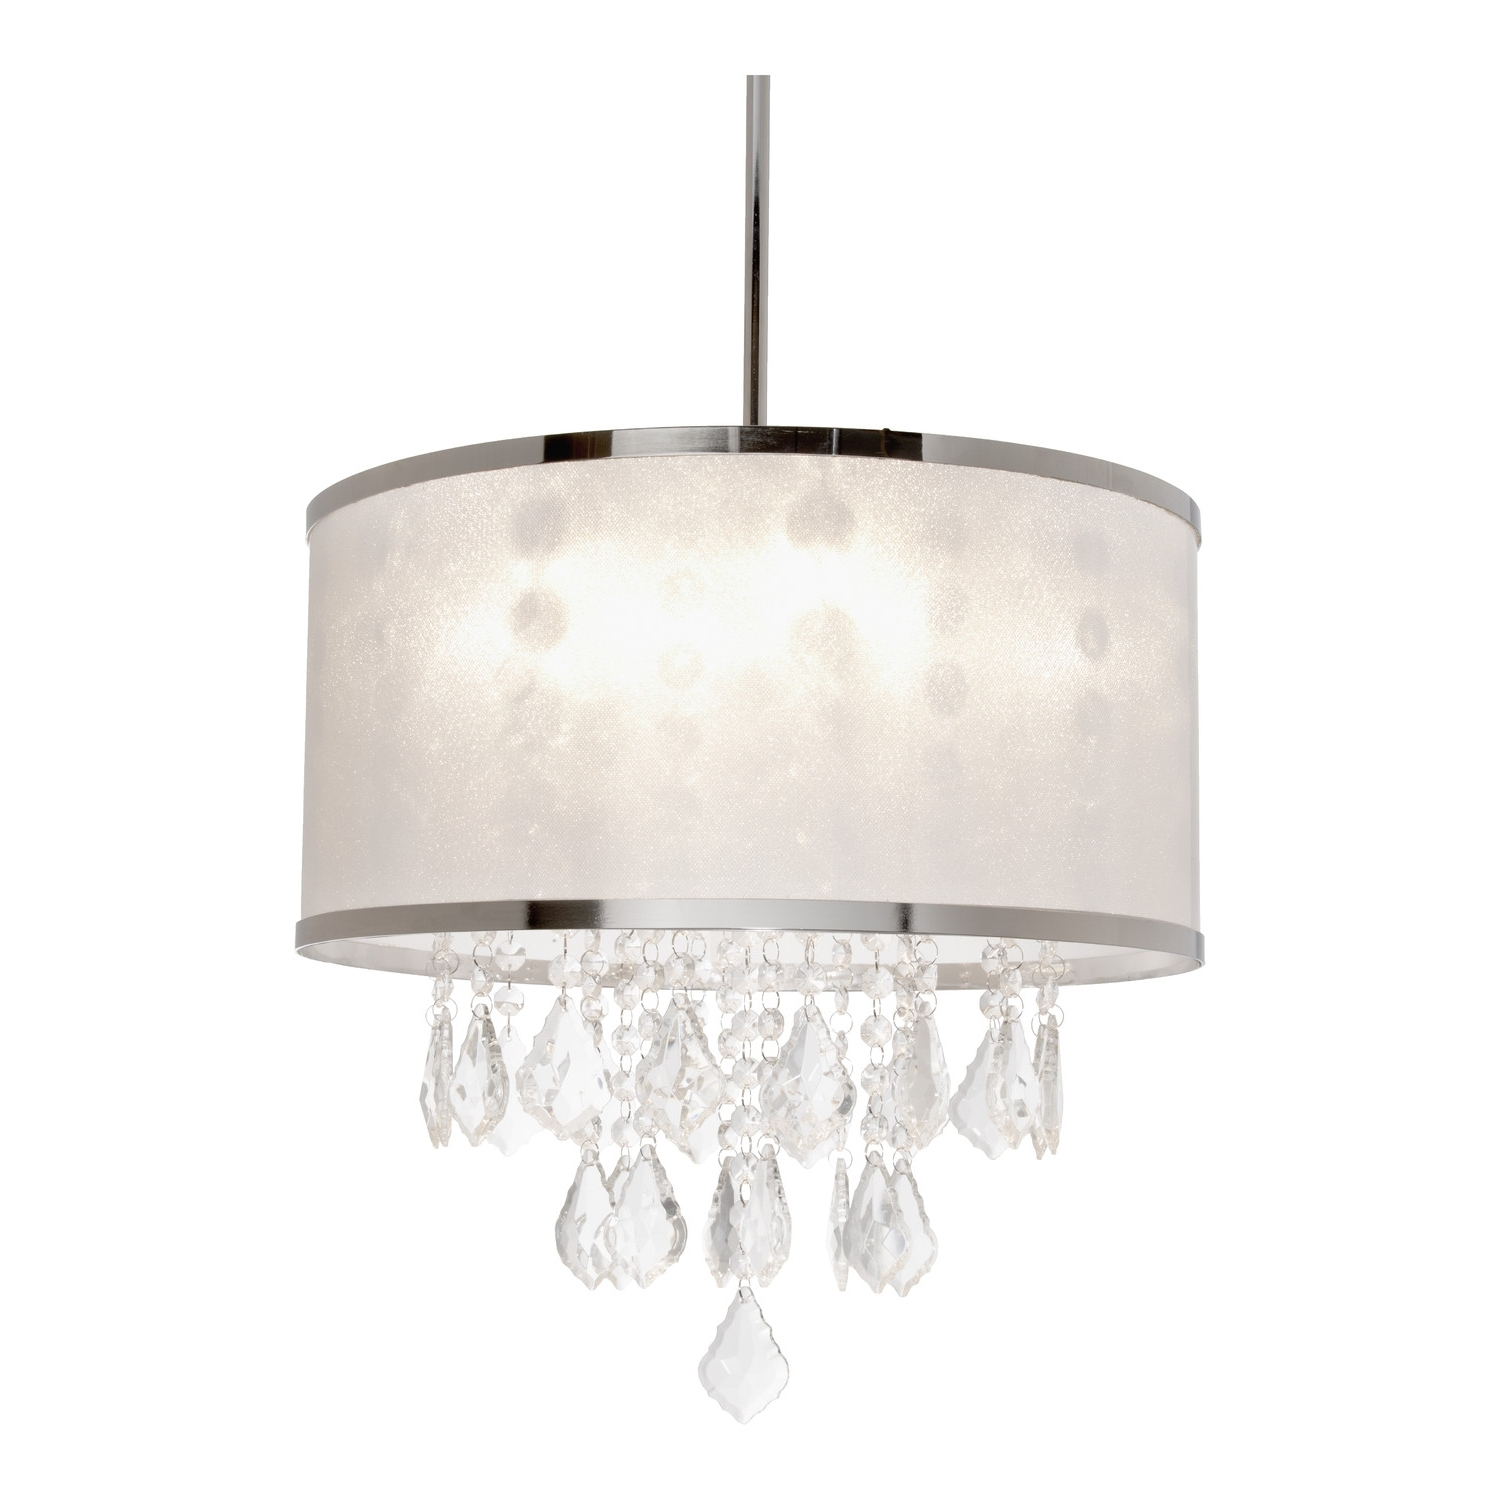 Chandeliers Design : Marvelous Wood Metal Chandelier Rustic Ceiling Within Latest Small Rustic Chandeliers (View 1 of 15)